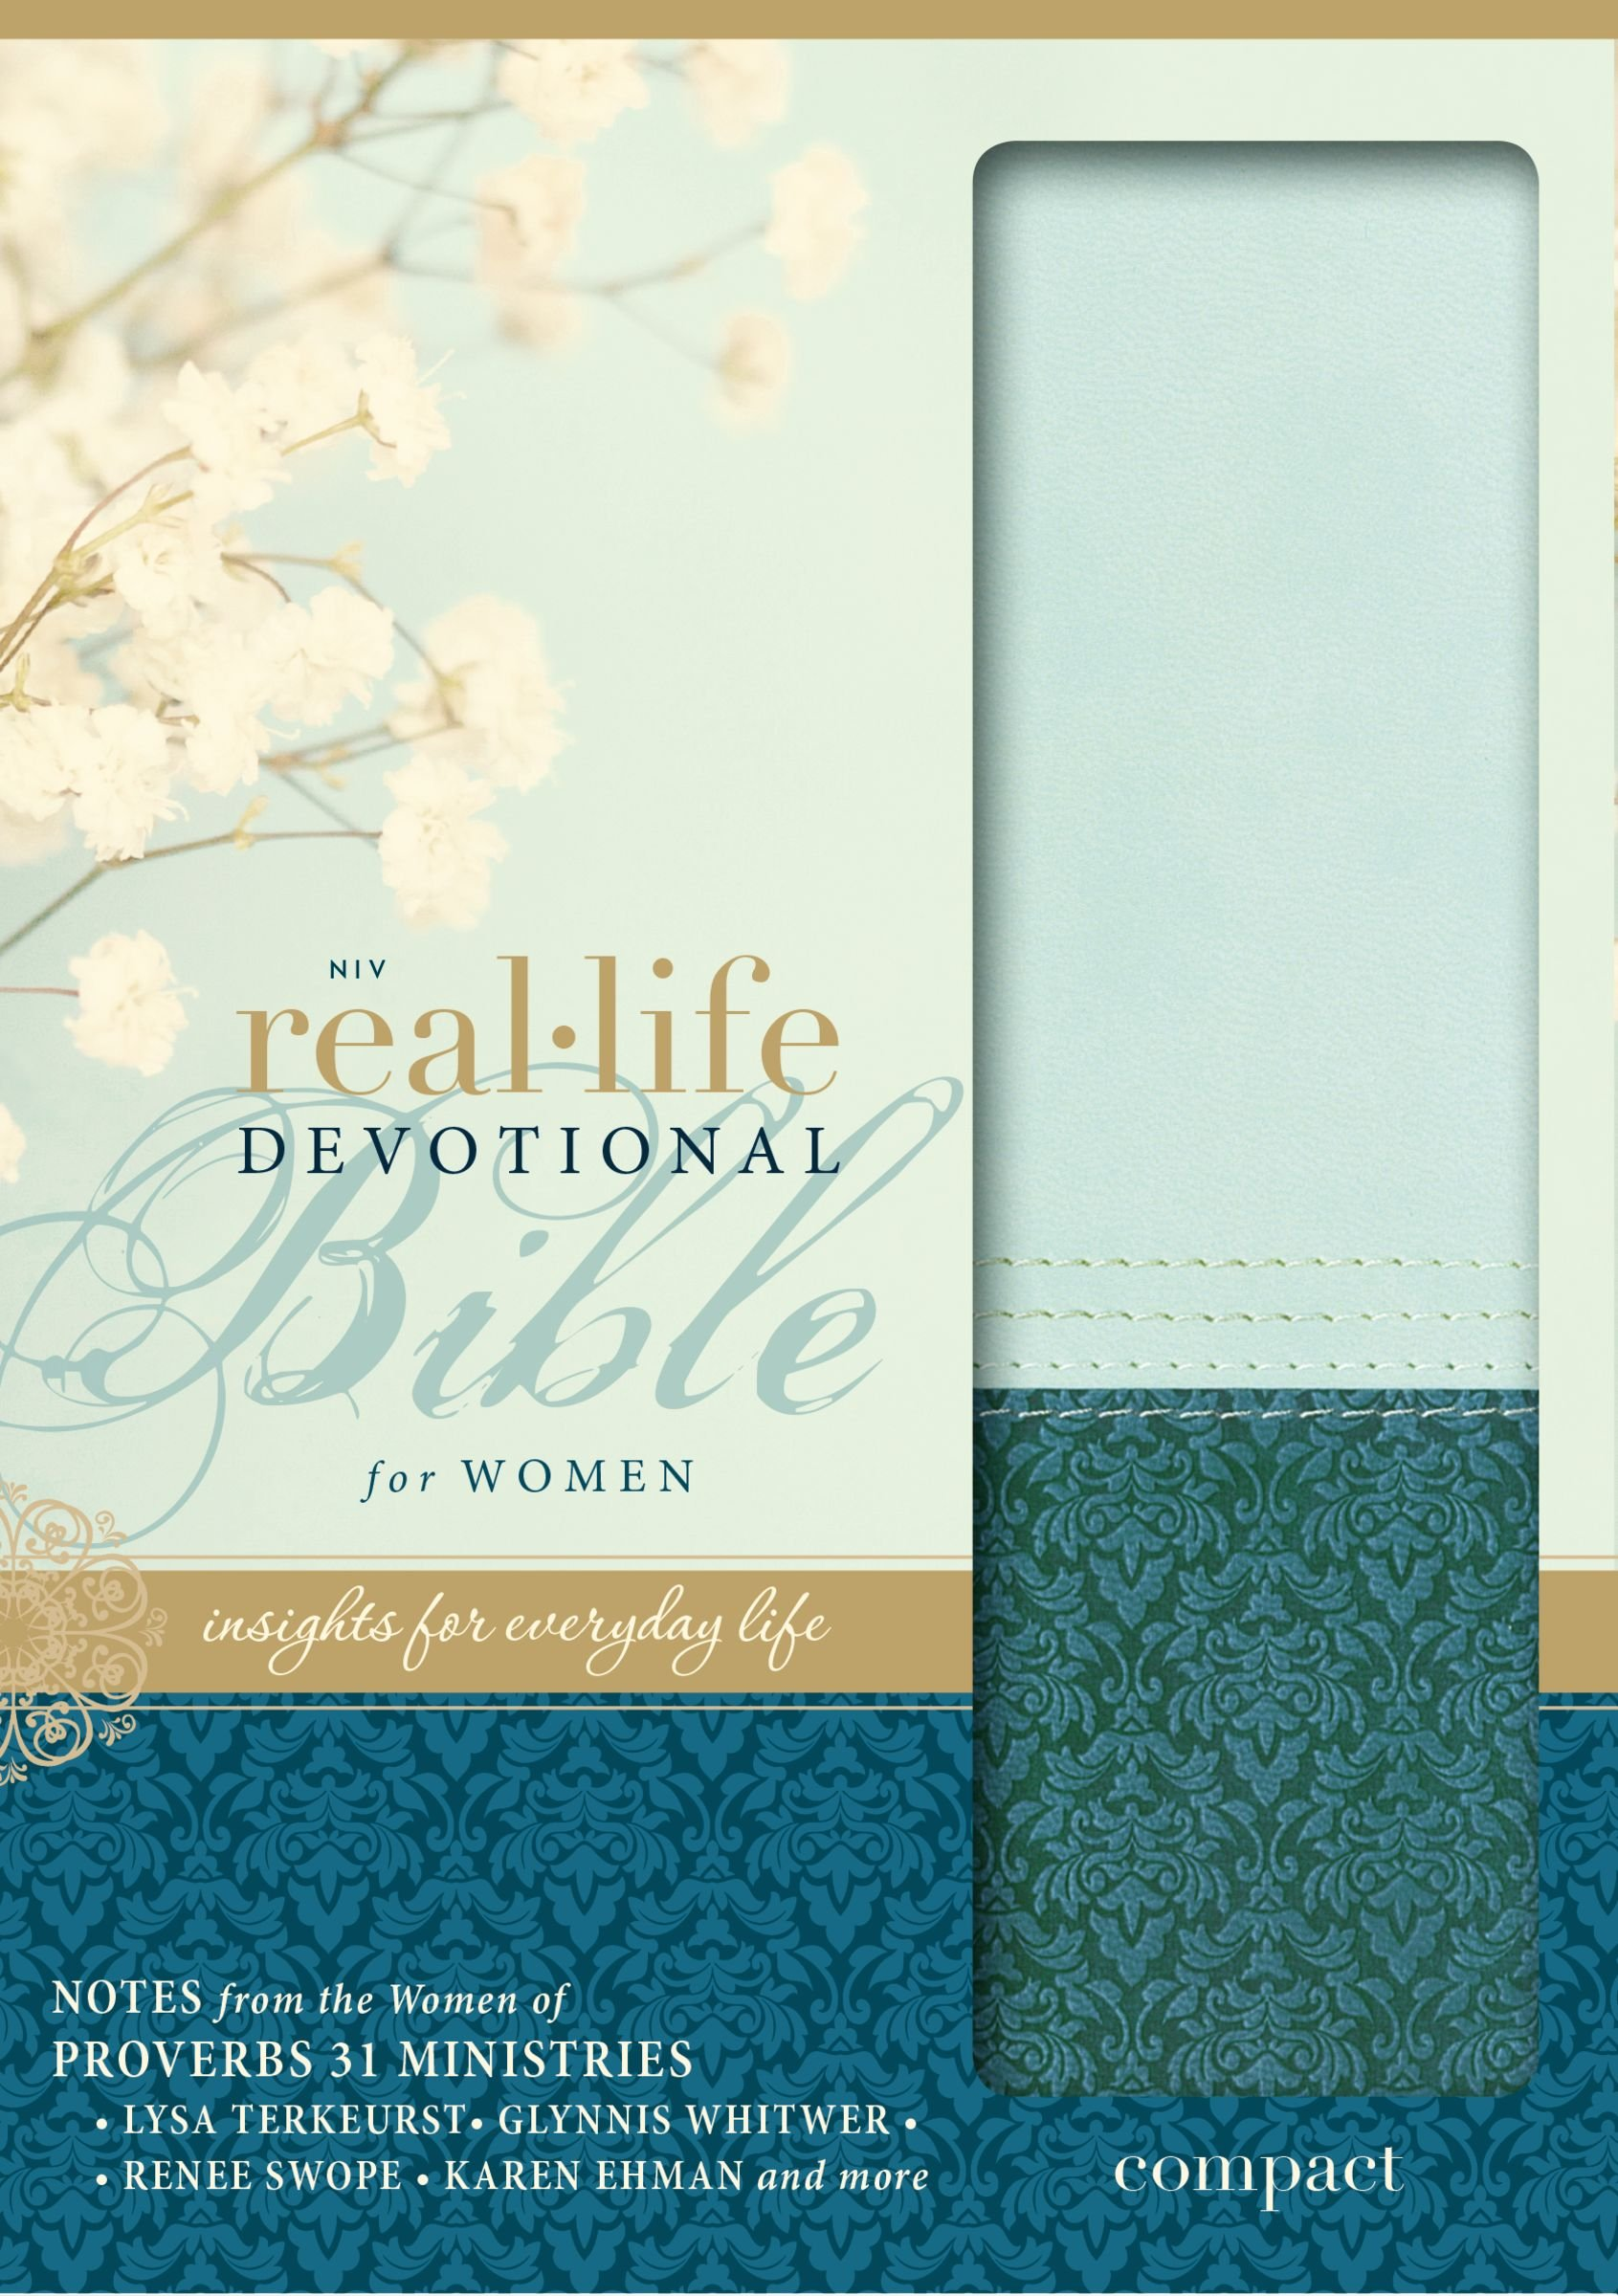 niv real life devotional bible for women compact leathersoft